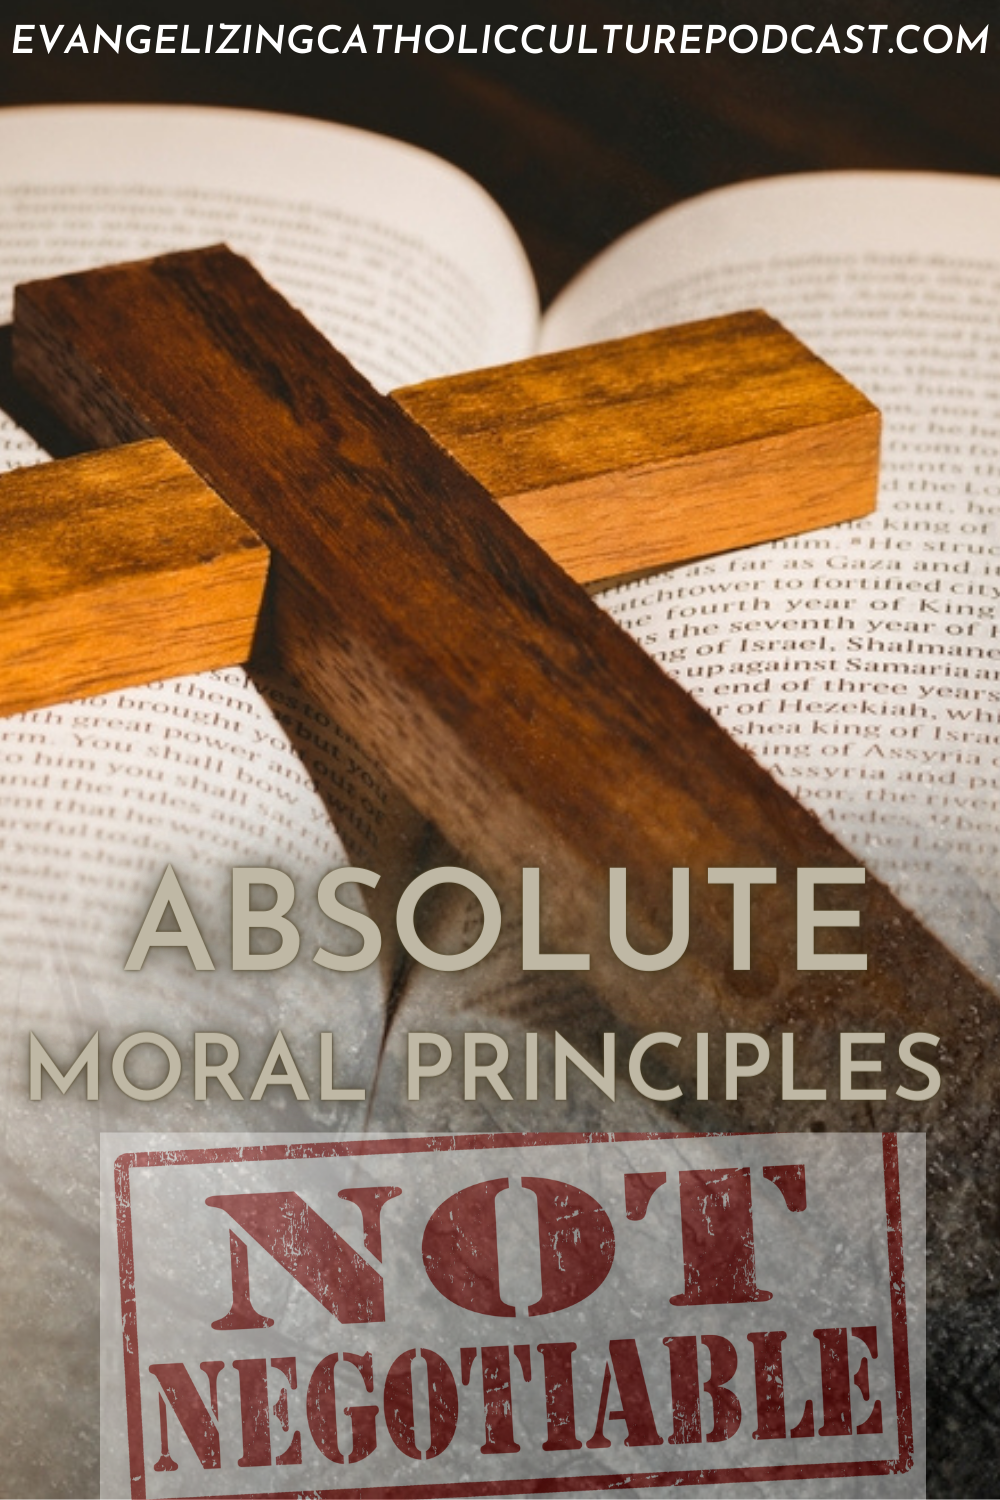 Absolute Moral Principles | What are the absolute moral principles that Christians especially Catholics must believe? In this episode, Father David explains the five clearly without any doubt or confusion. While some want to push falsehoods, there is a big difference in what we must believe. #christianpodcast #podcast #MoralPrinciples #Christianmorality #christianmorals #morals #Christianity #Christians #Catholic